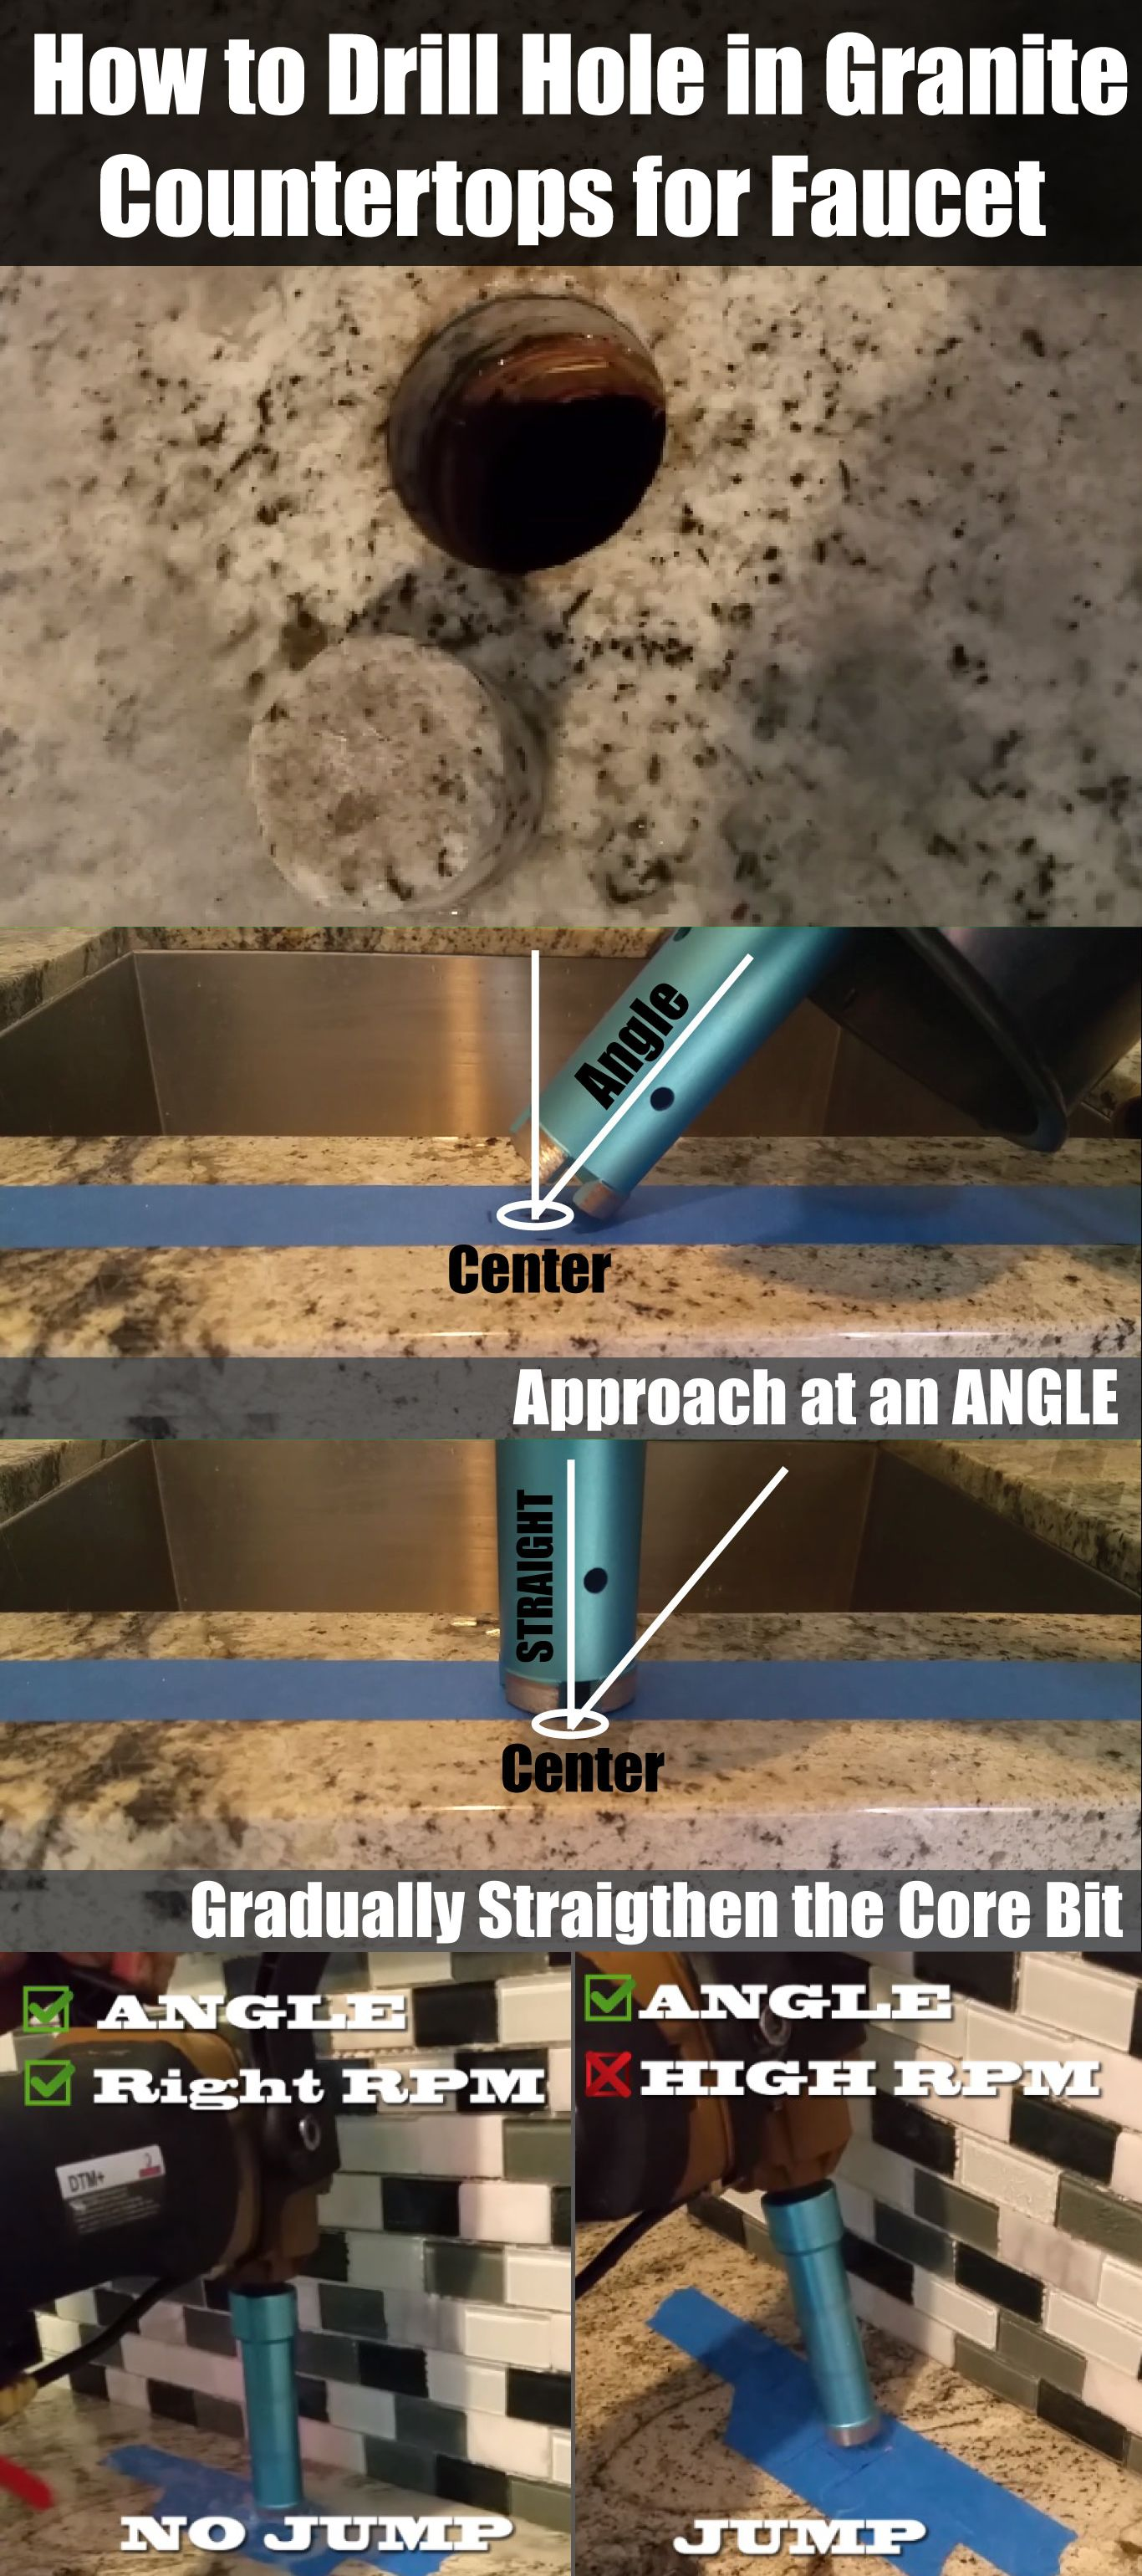 How to drill hole in granite concrete countertops tiles